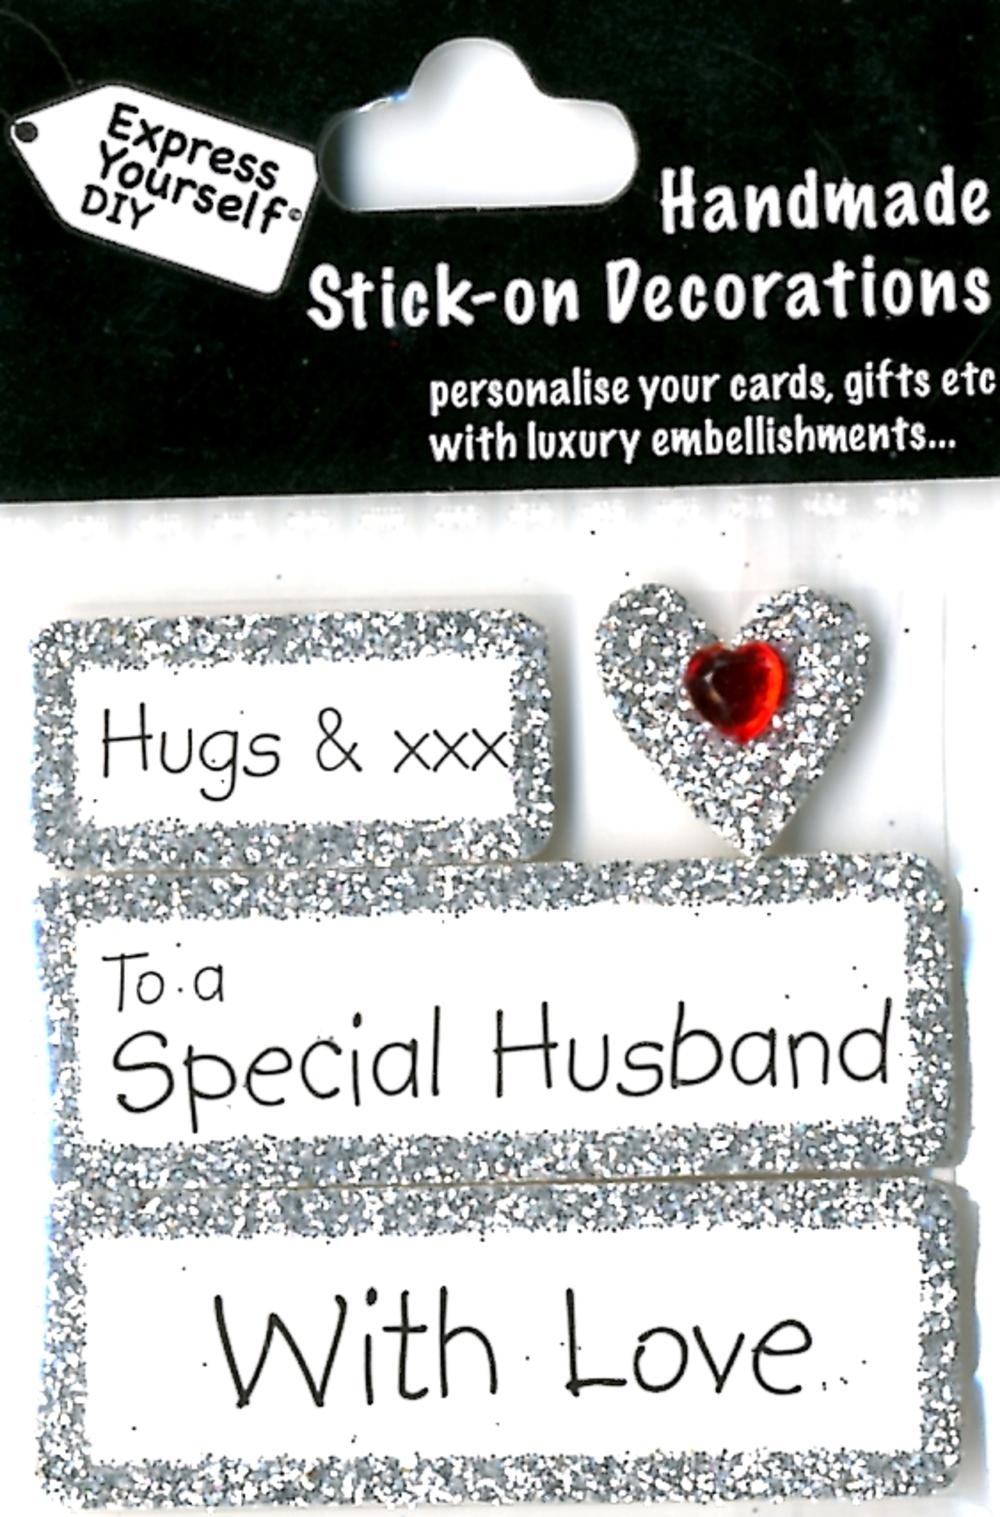 Hugs to a special husband diy greeting card toppers gift hugs to a special husband diy greeting card toppers solutioingenieria Gallery